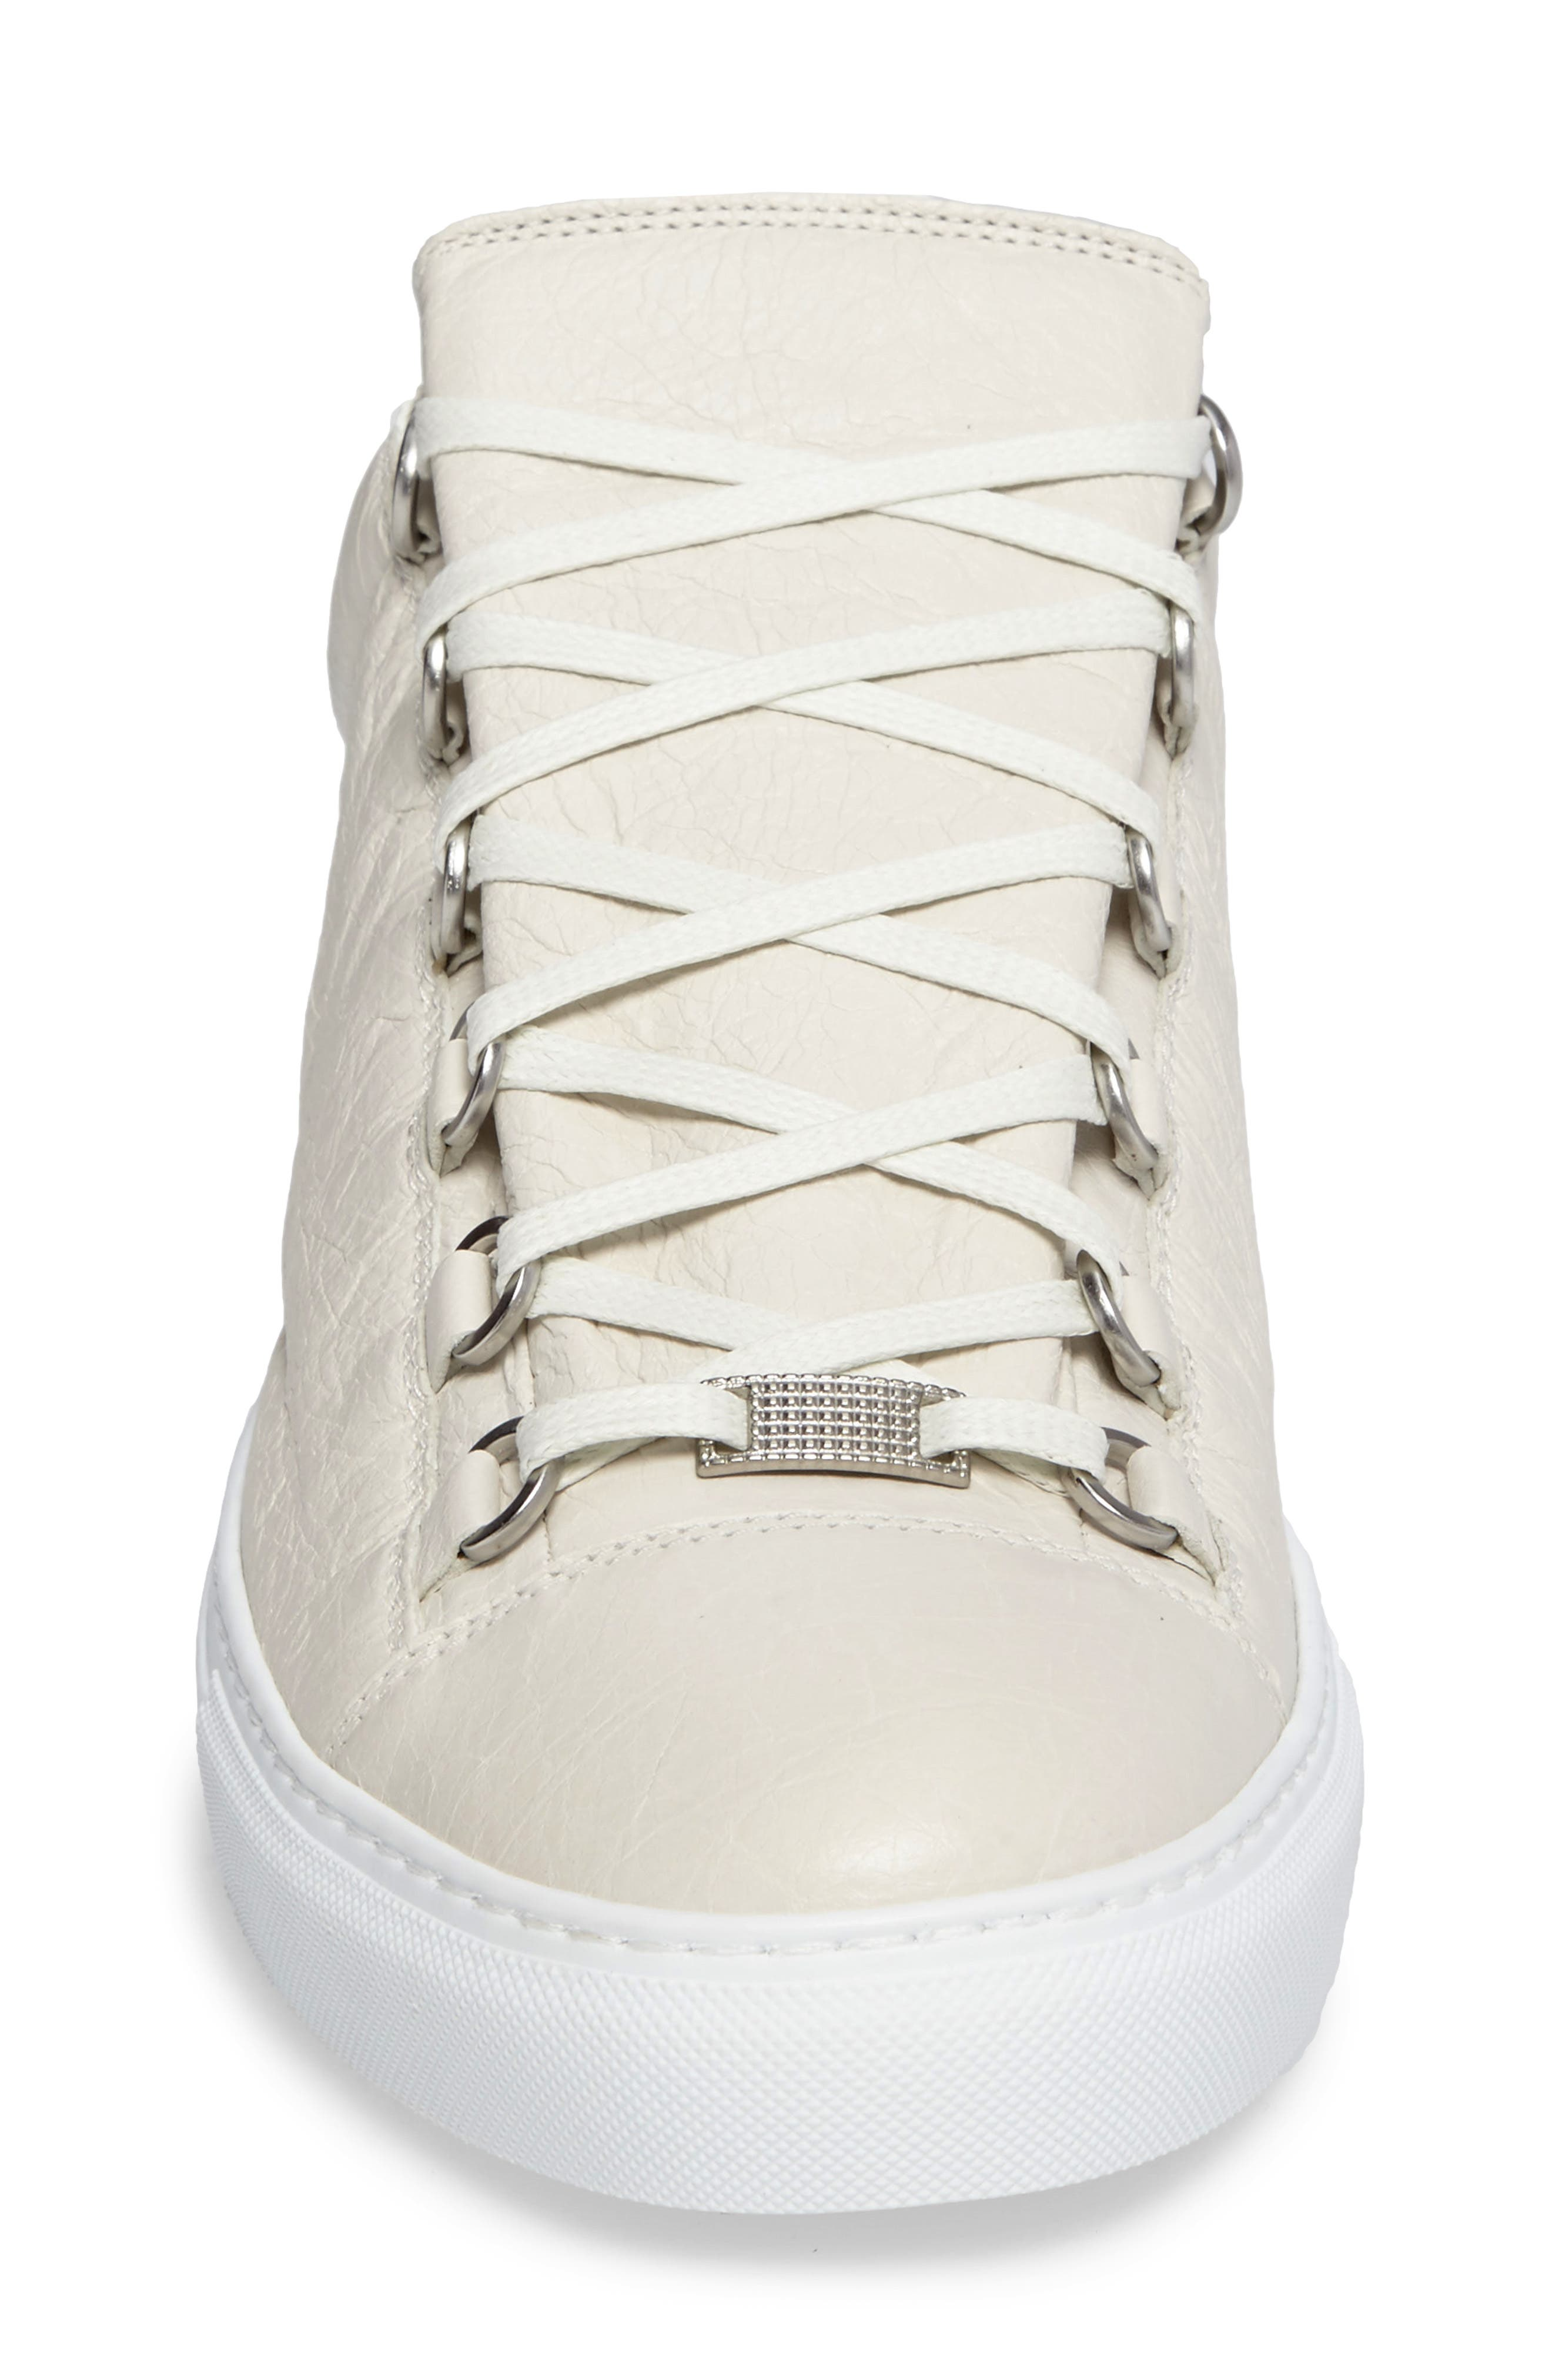 Arena Low Sneaker,                             Alternate thumbnail 4, color,                             Extra Blanc Leather